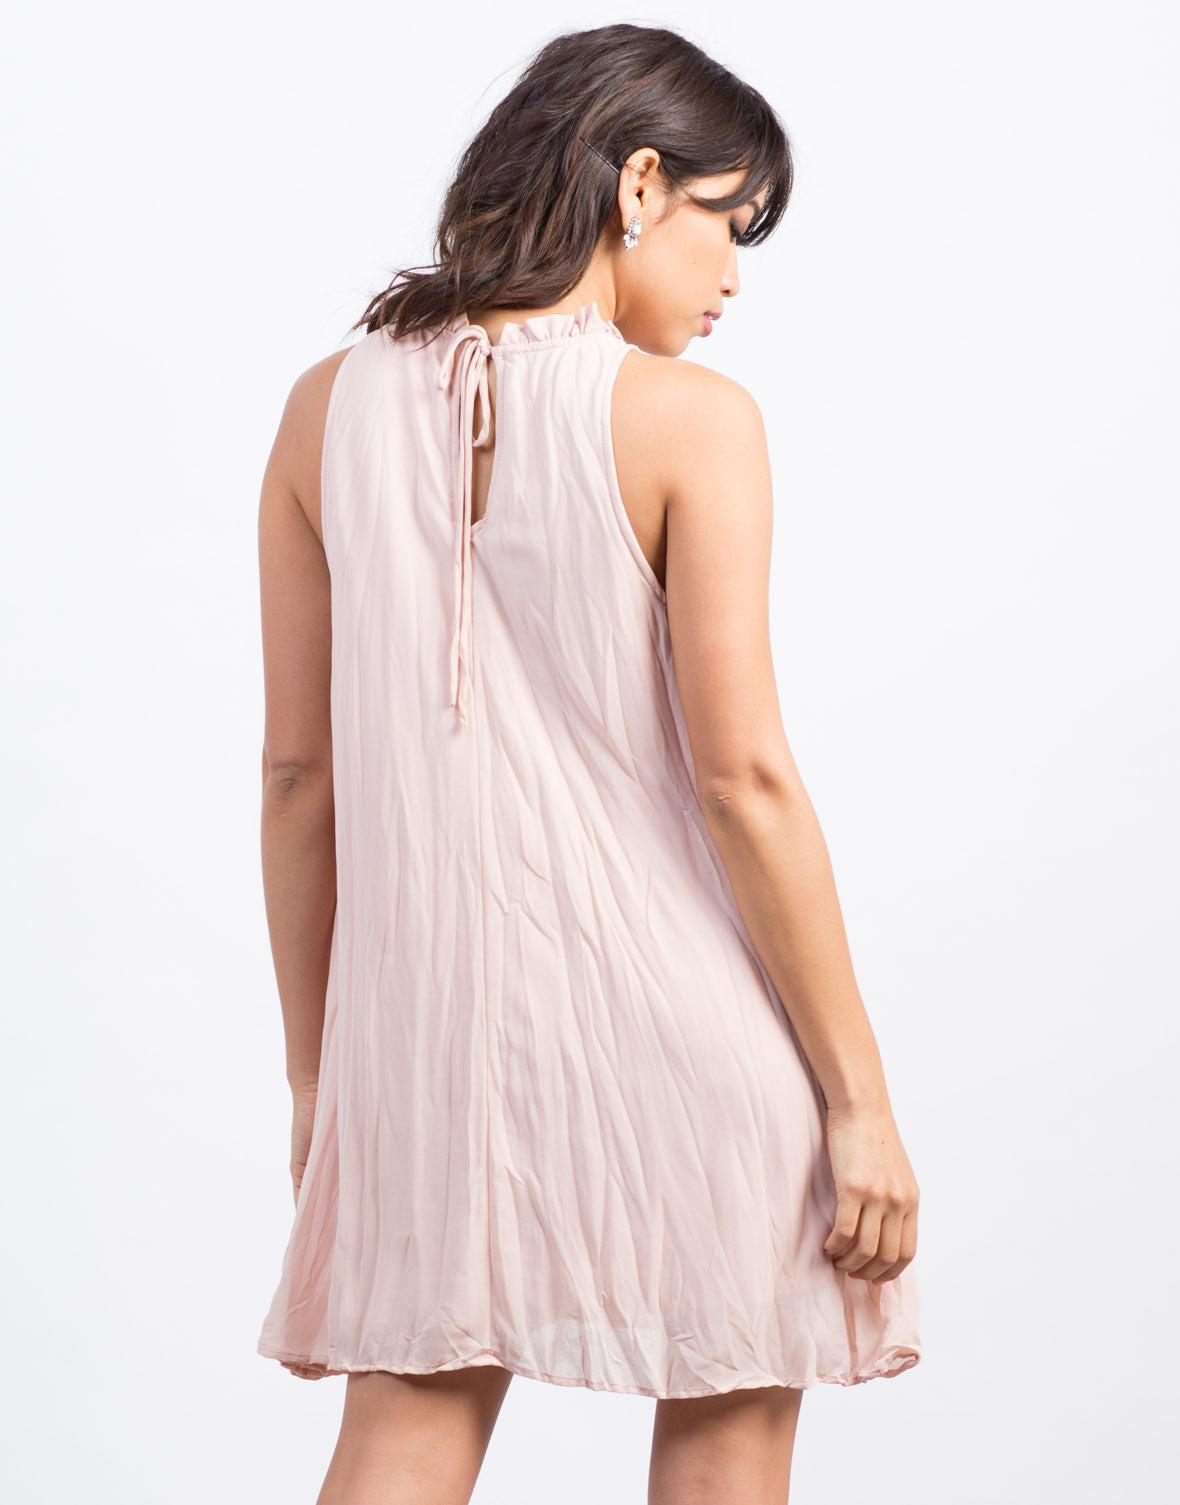 Back View of Shirring Neckline Dress